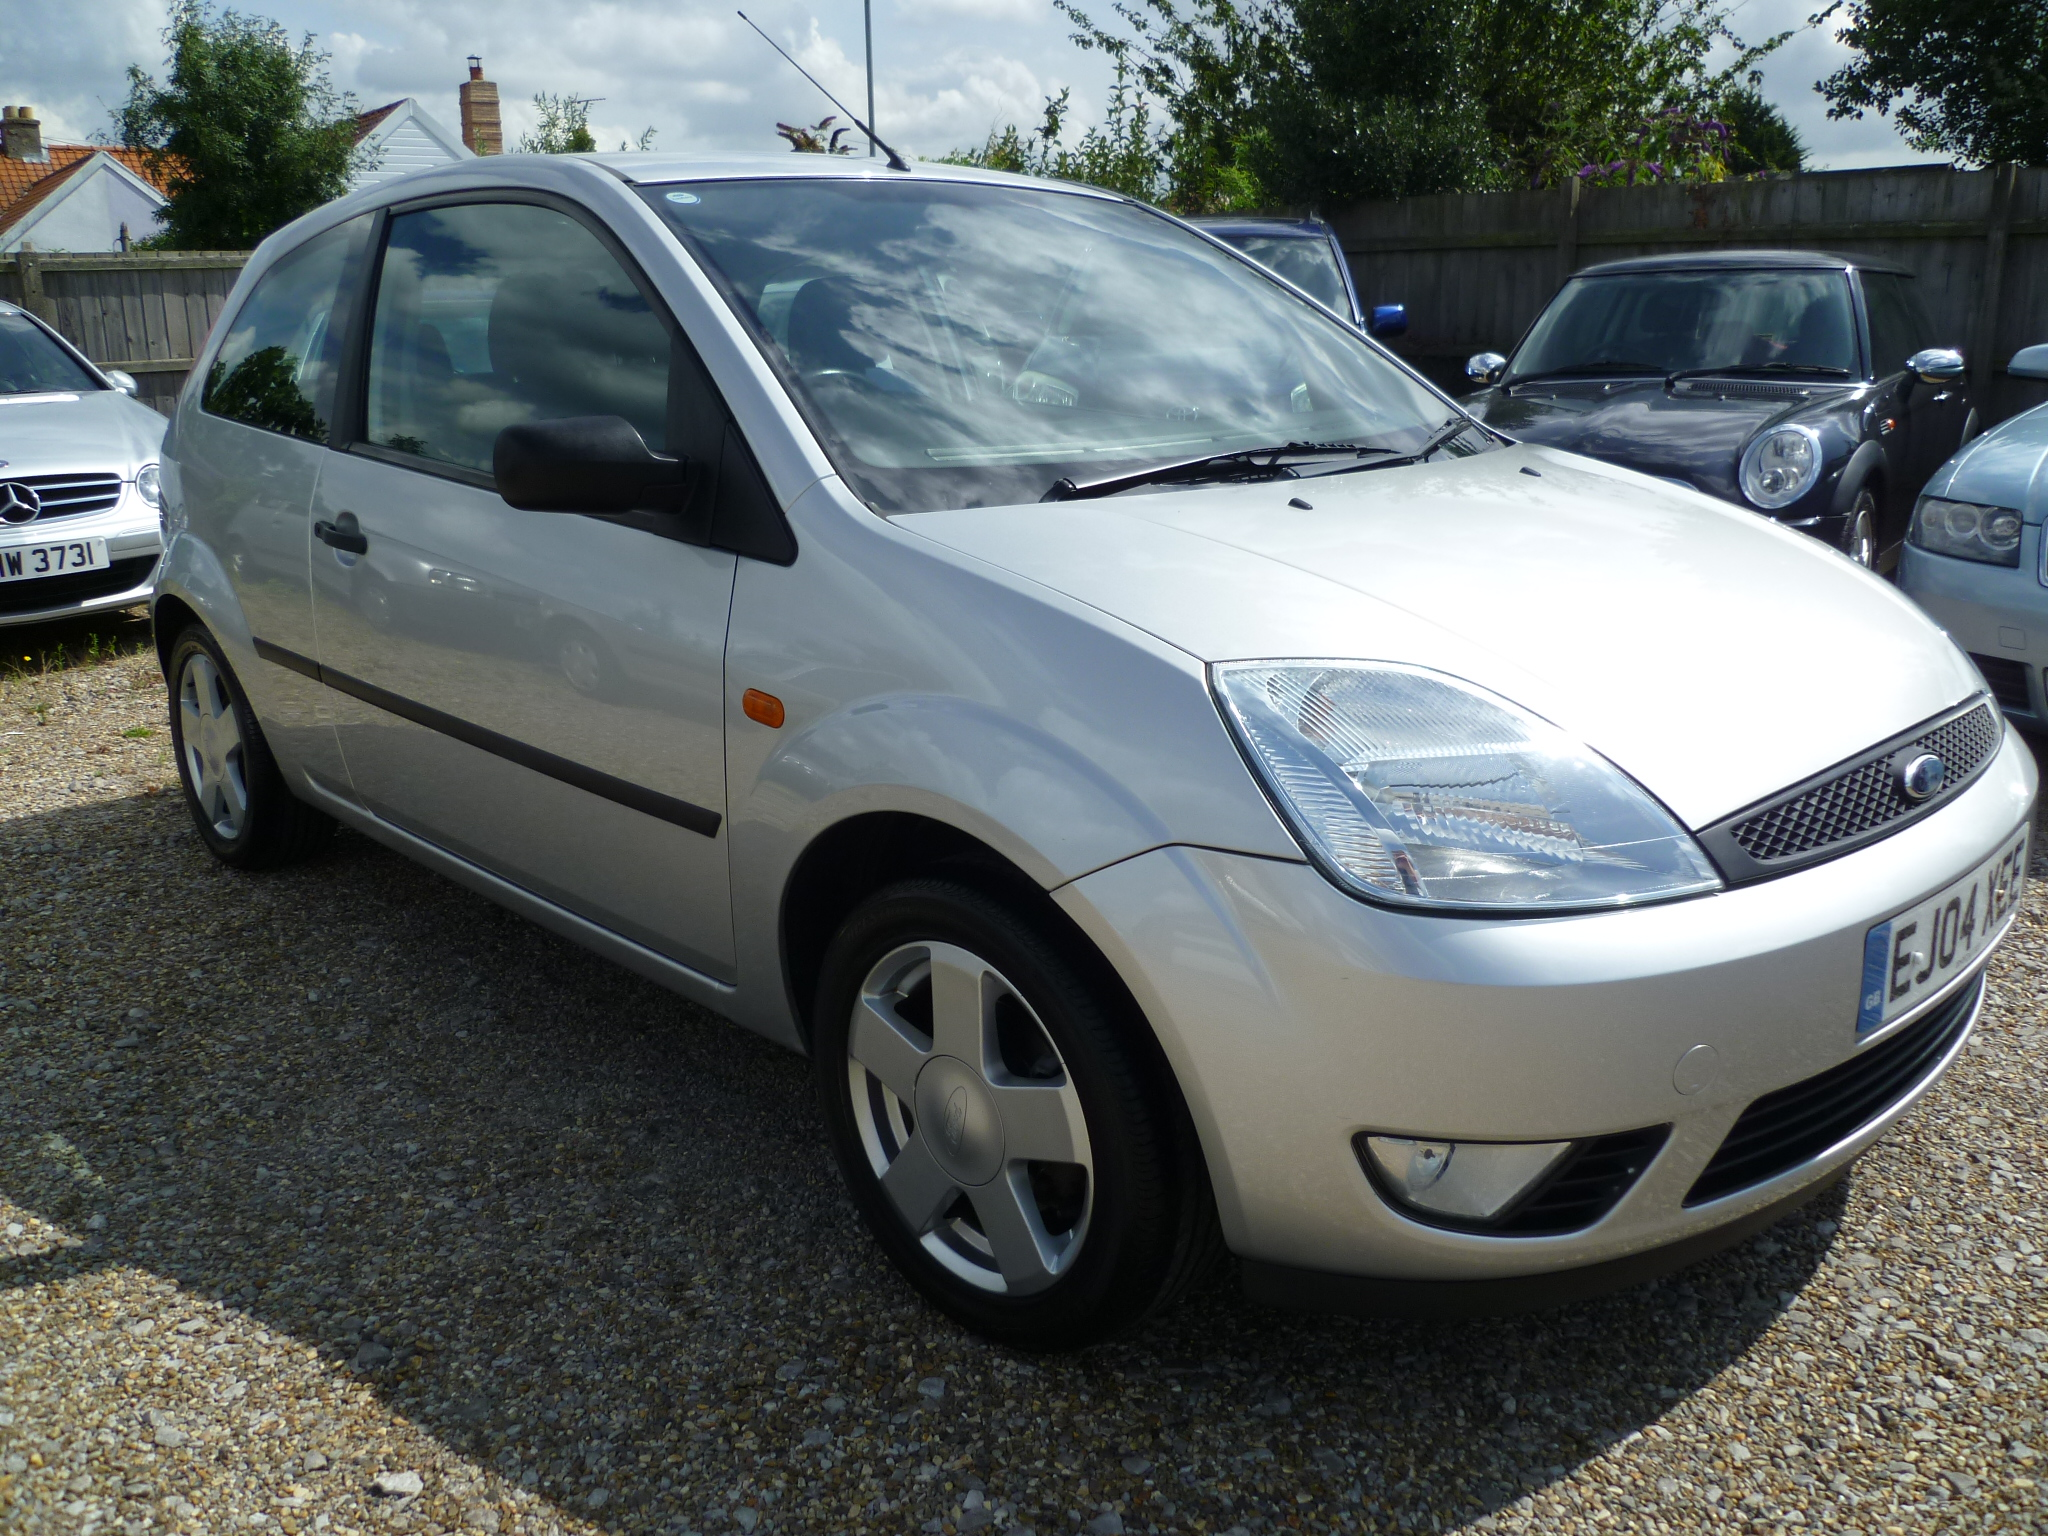 Ford Fiesta 1.4 3Dr Flame edition 005